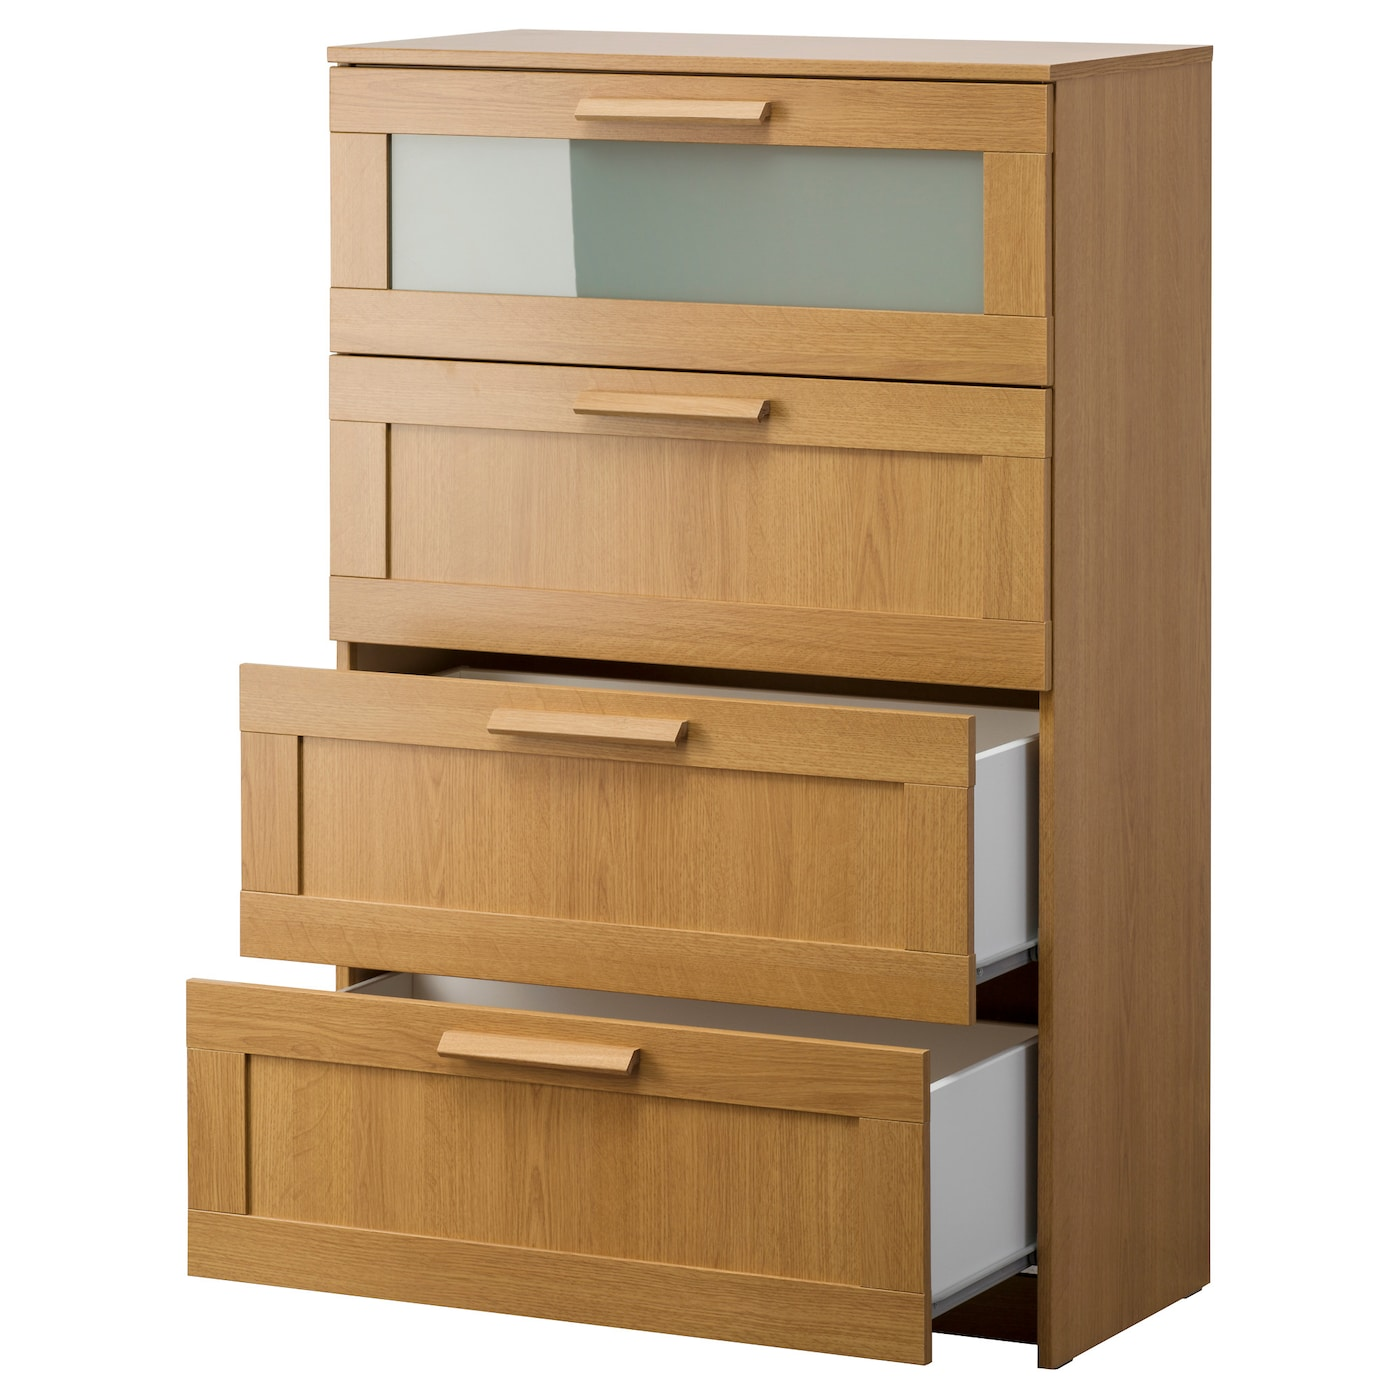 IKEA BRIMNES chest of 4 drawers